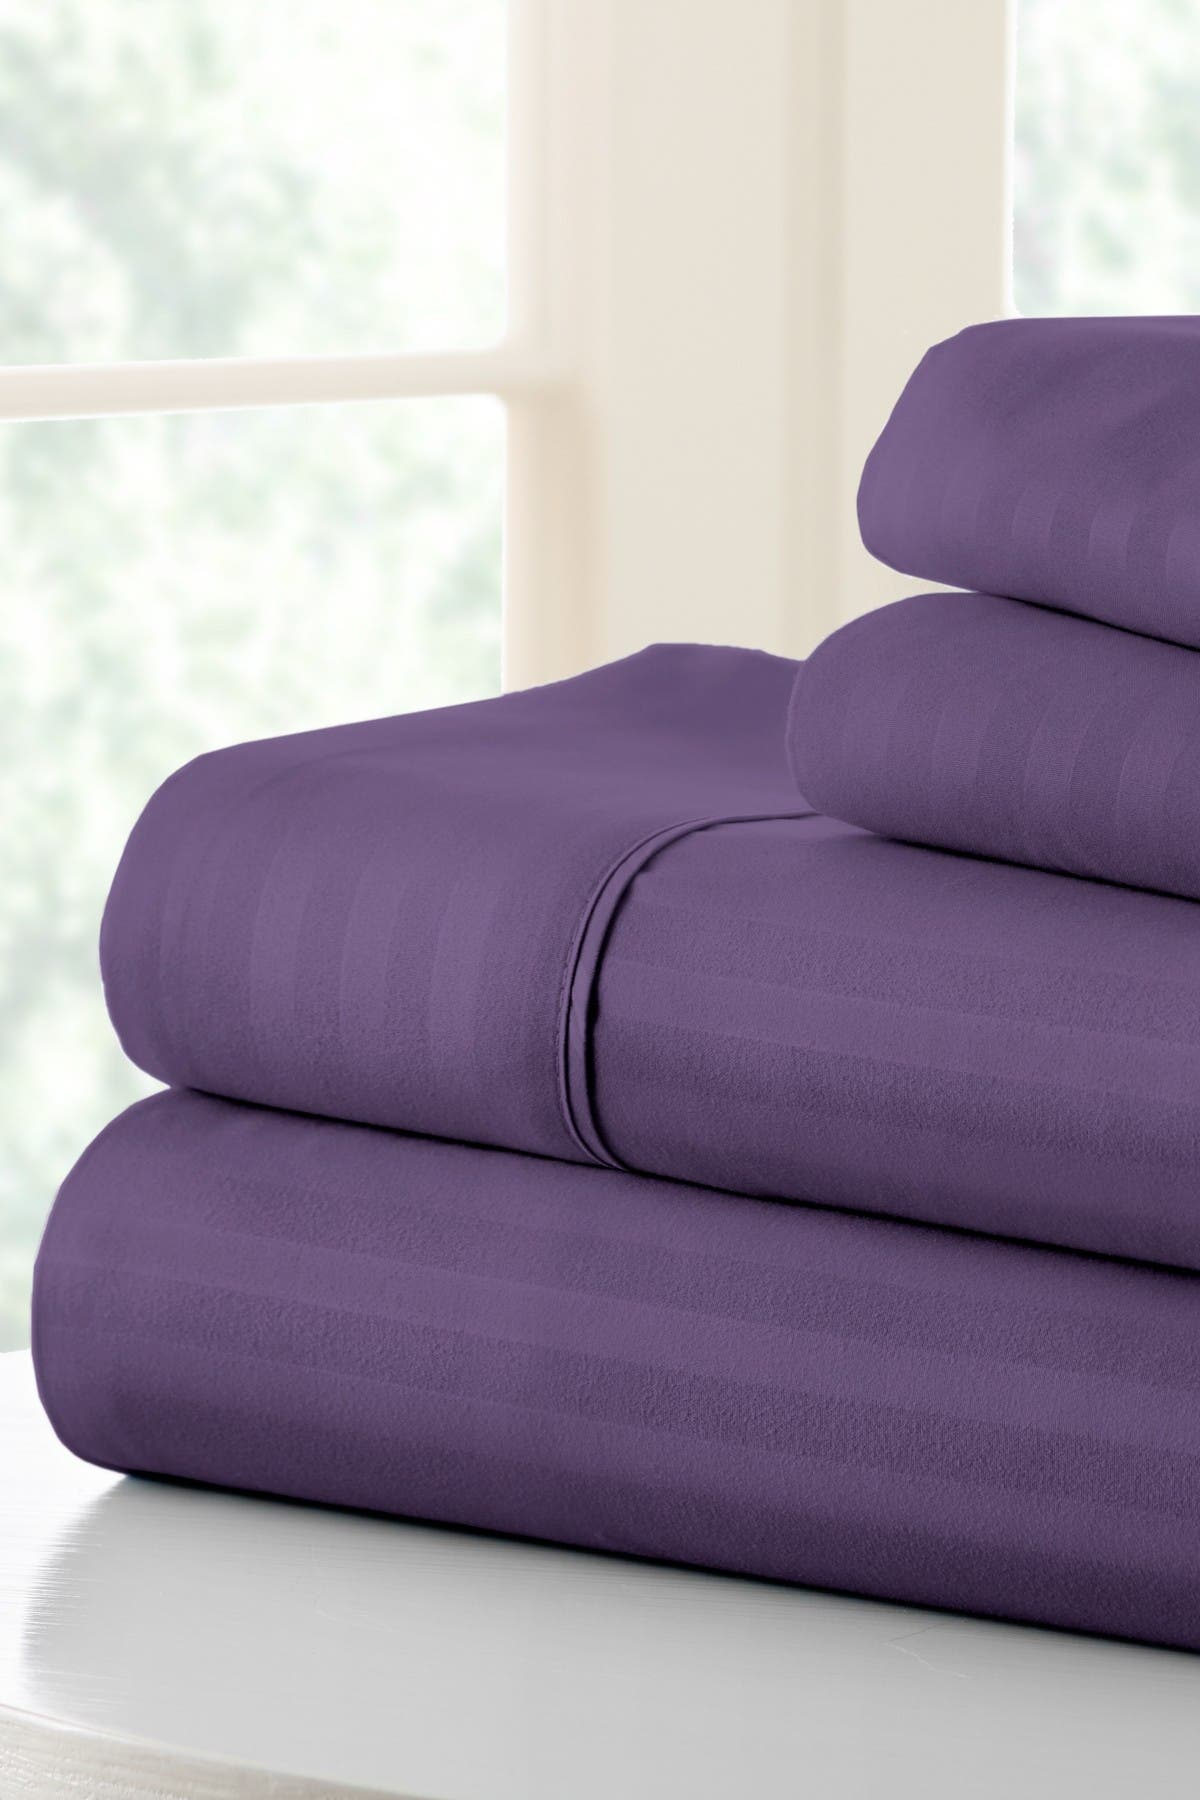 Image of IENJOY HOME King Hotel Collection Premium Ultra Soft 4-Piece Striped Bed Sheet Set - Purple